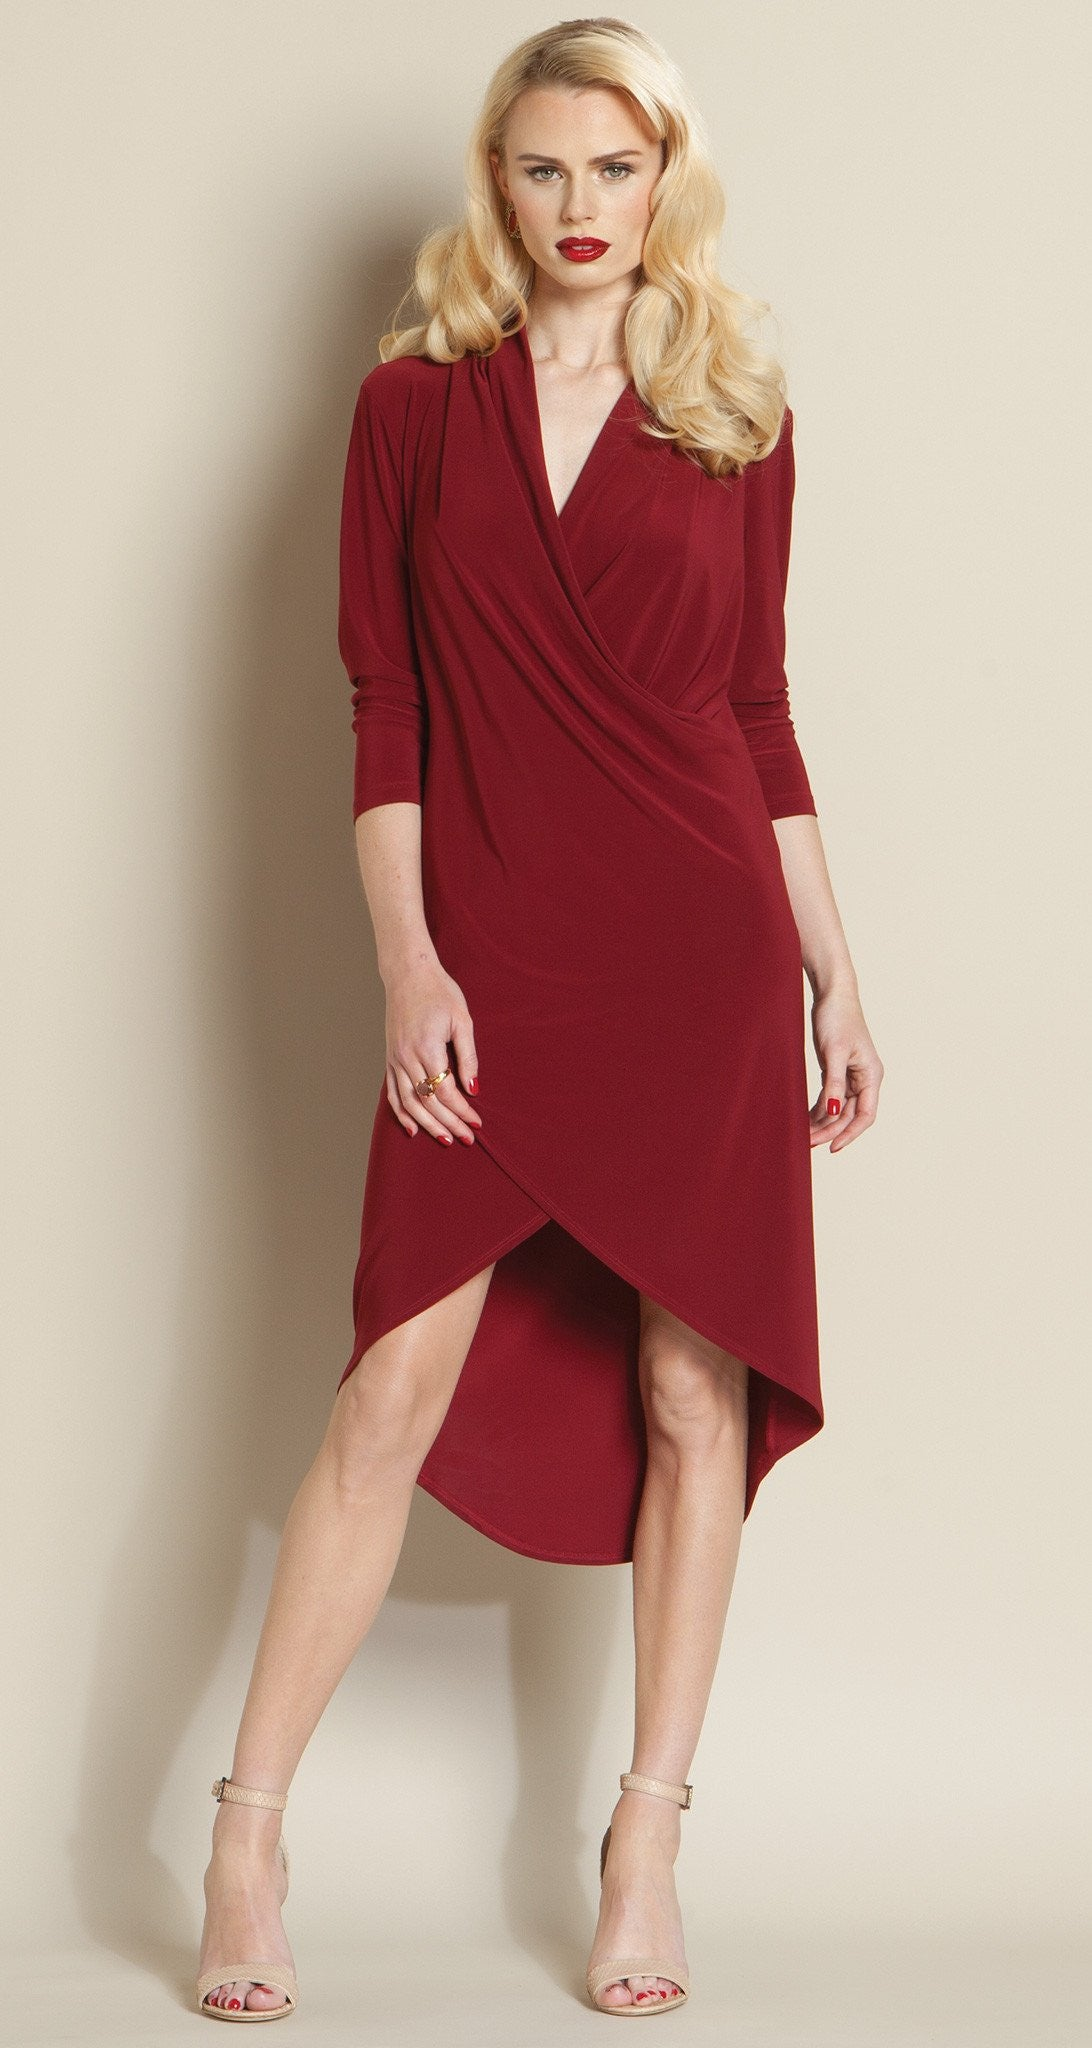 Crossover Tulip Hem Dress - Merlot - Final Sale! - Clara Sunwoo